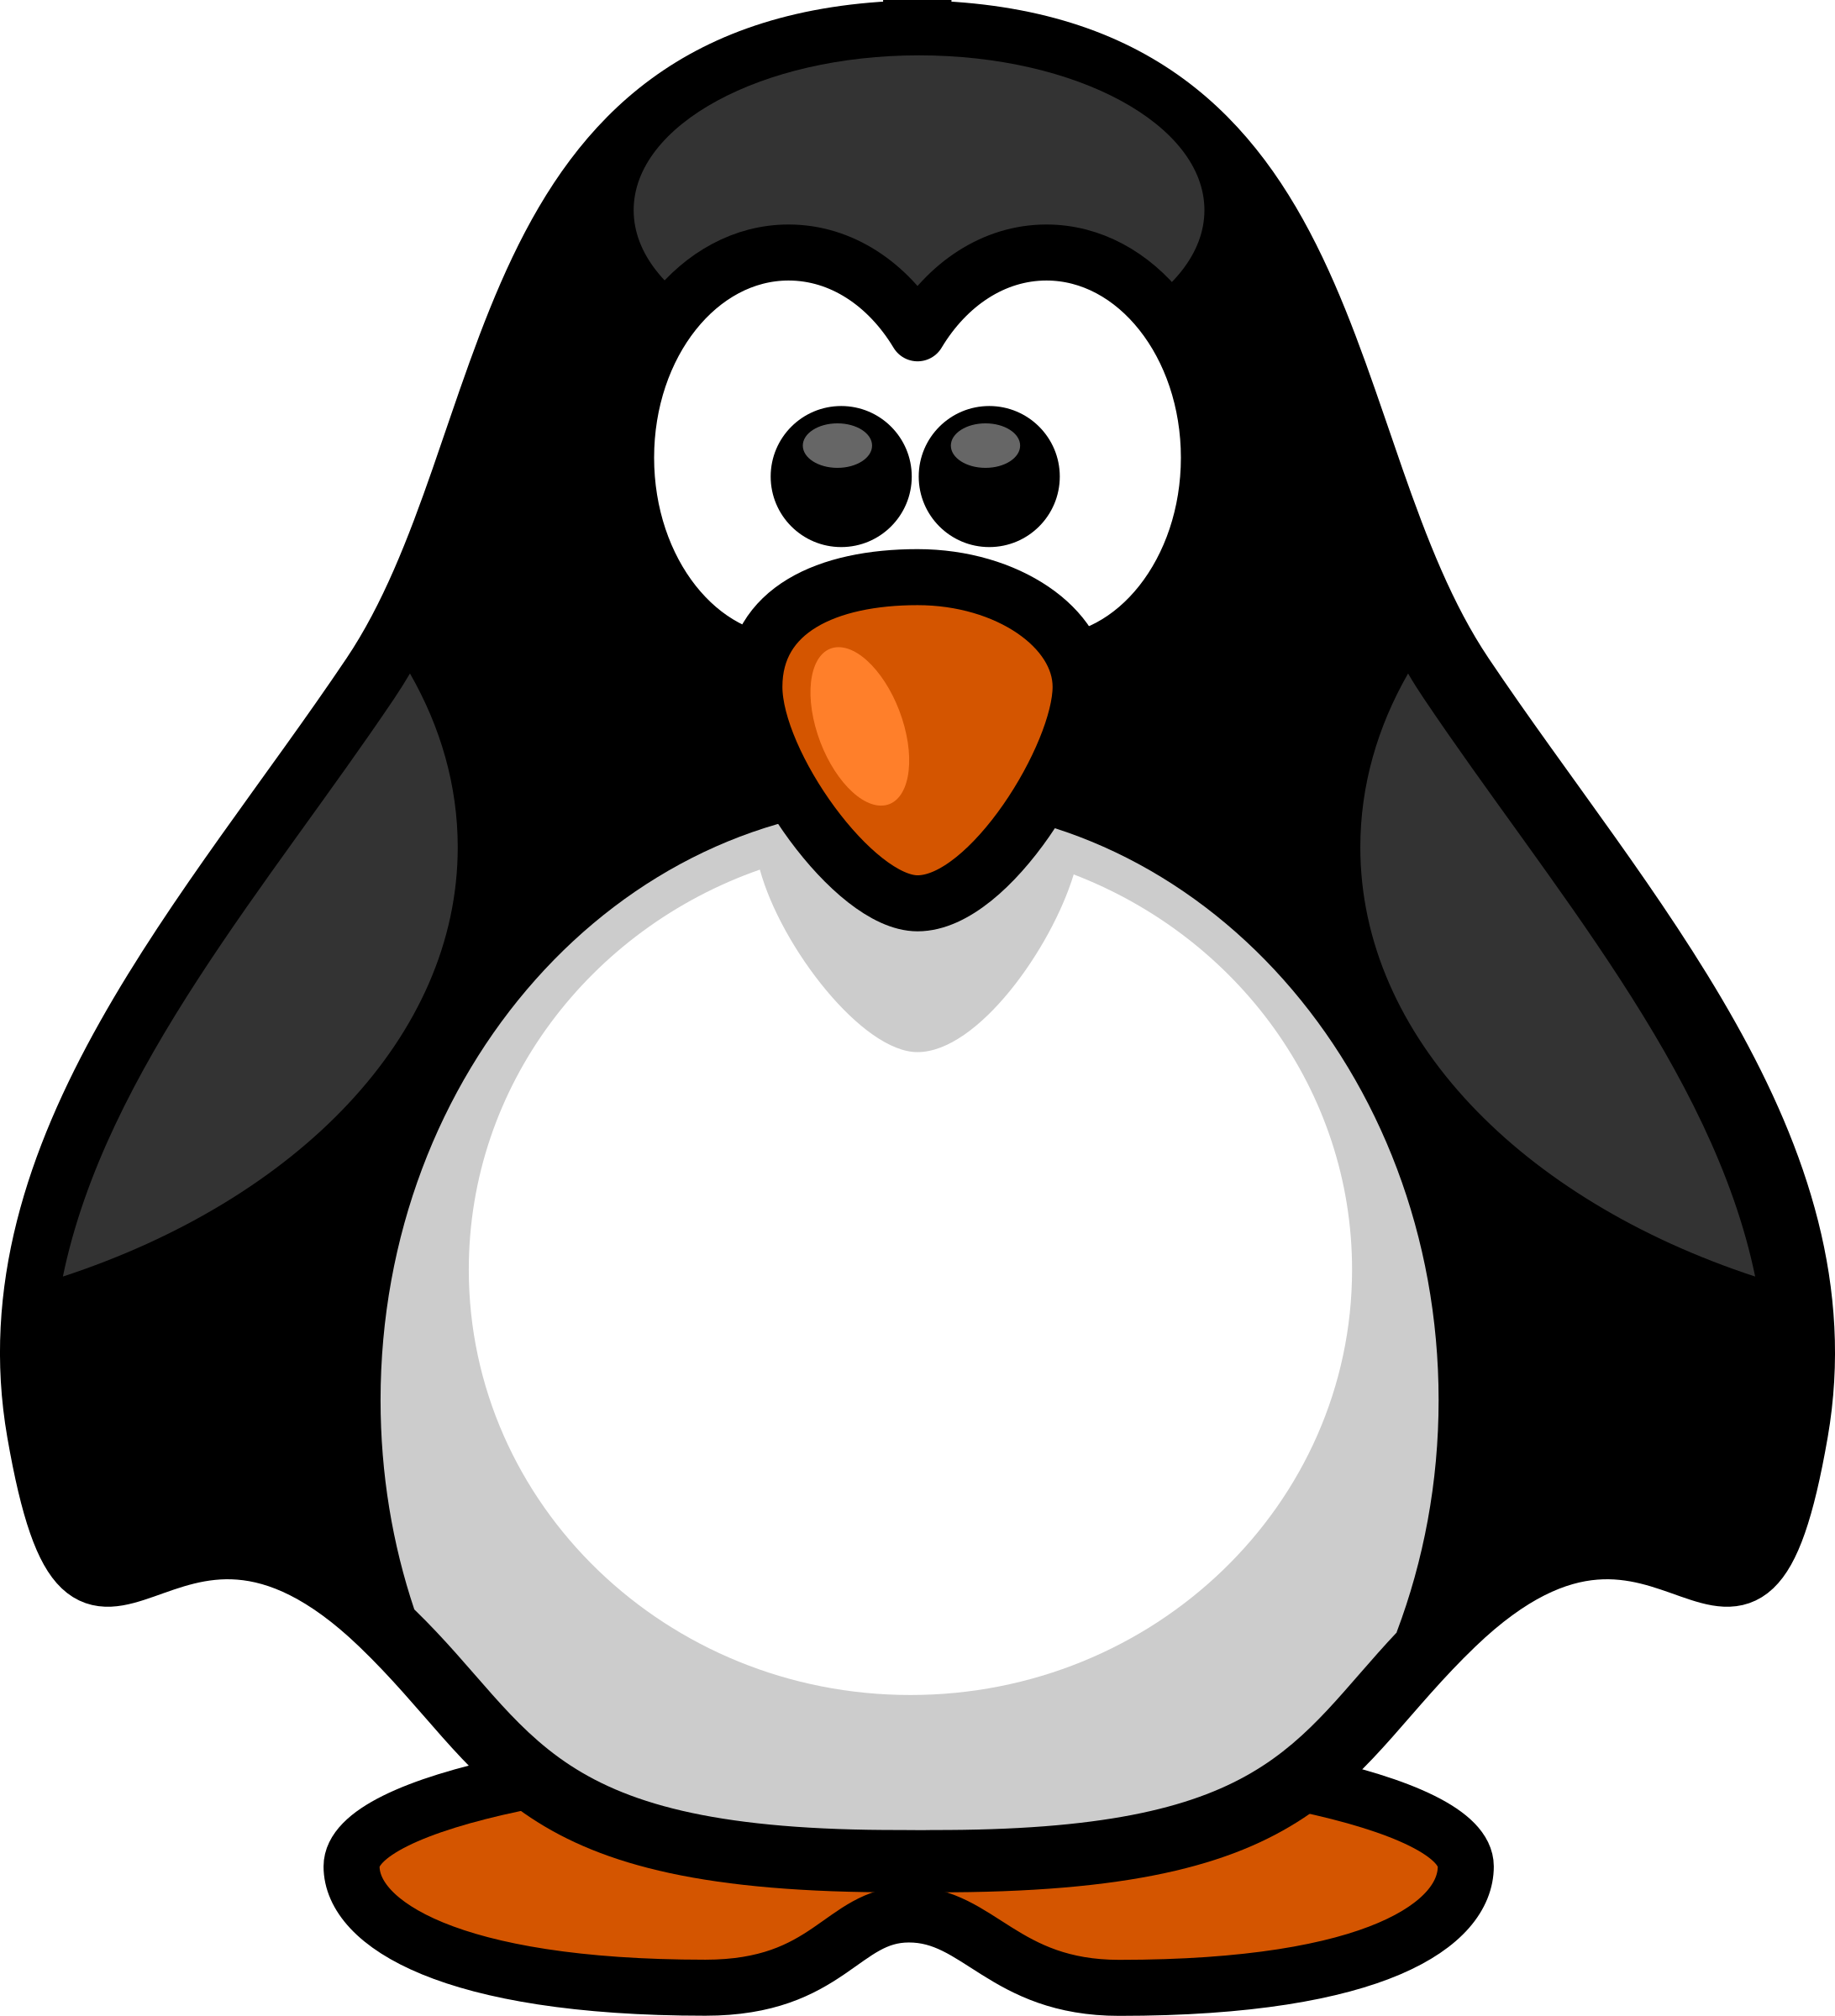 Ballon drawing little penguin. Clipart big image png